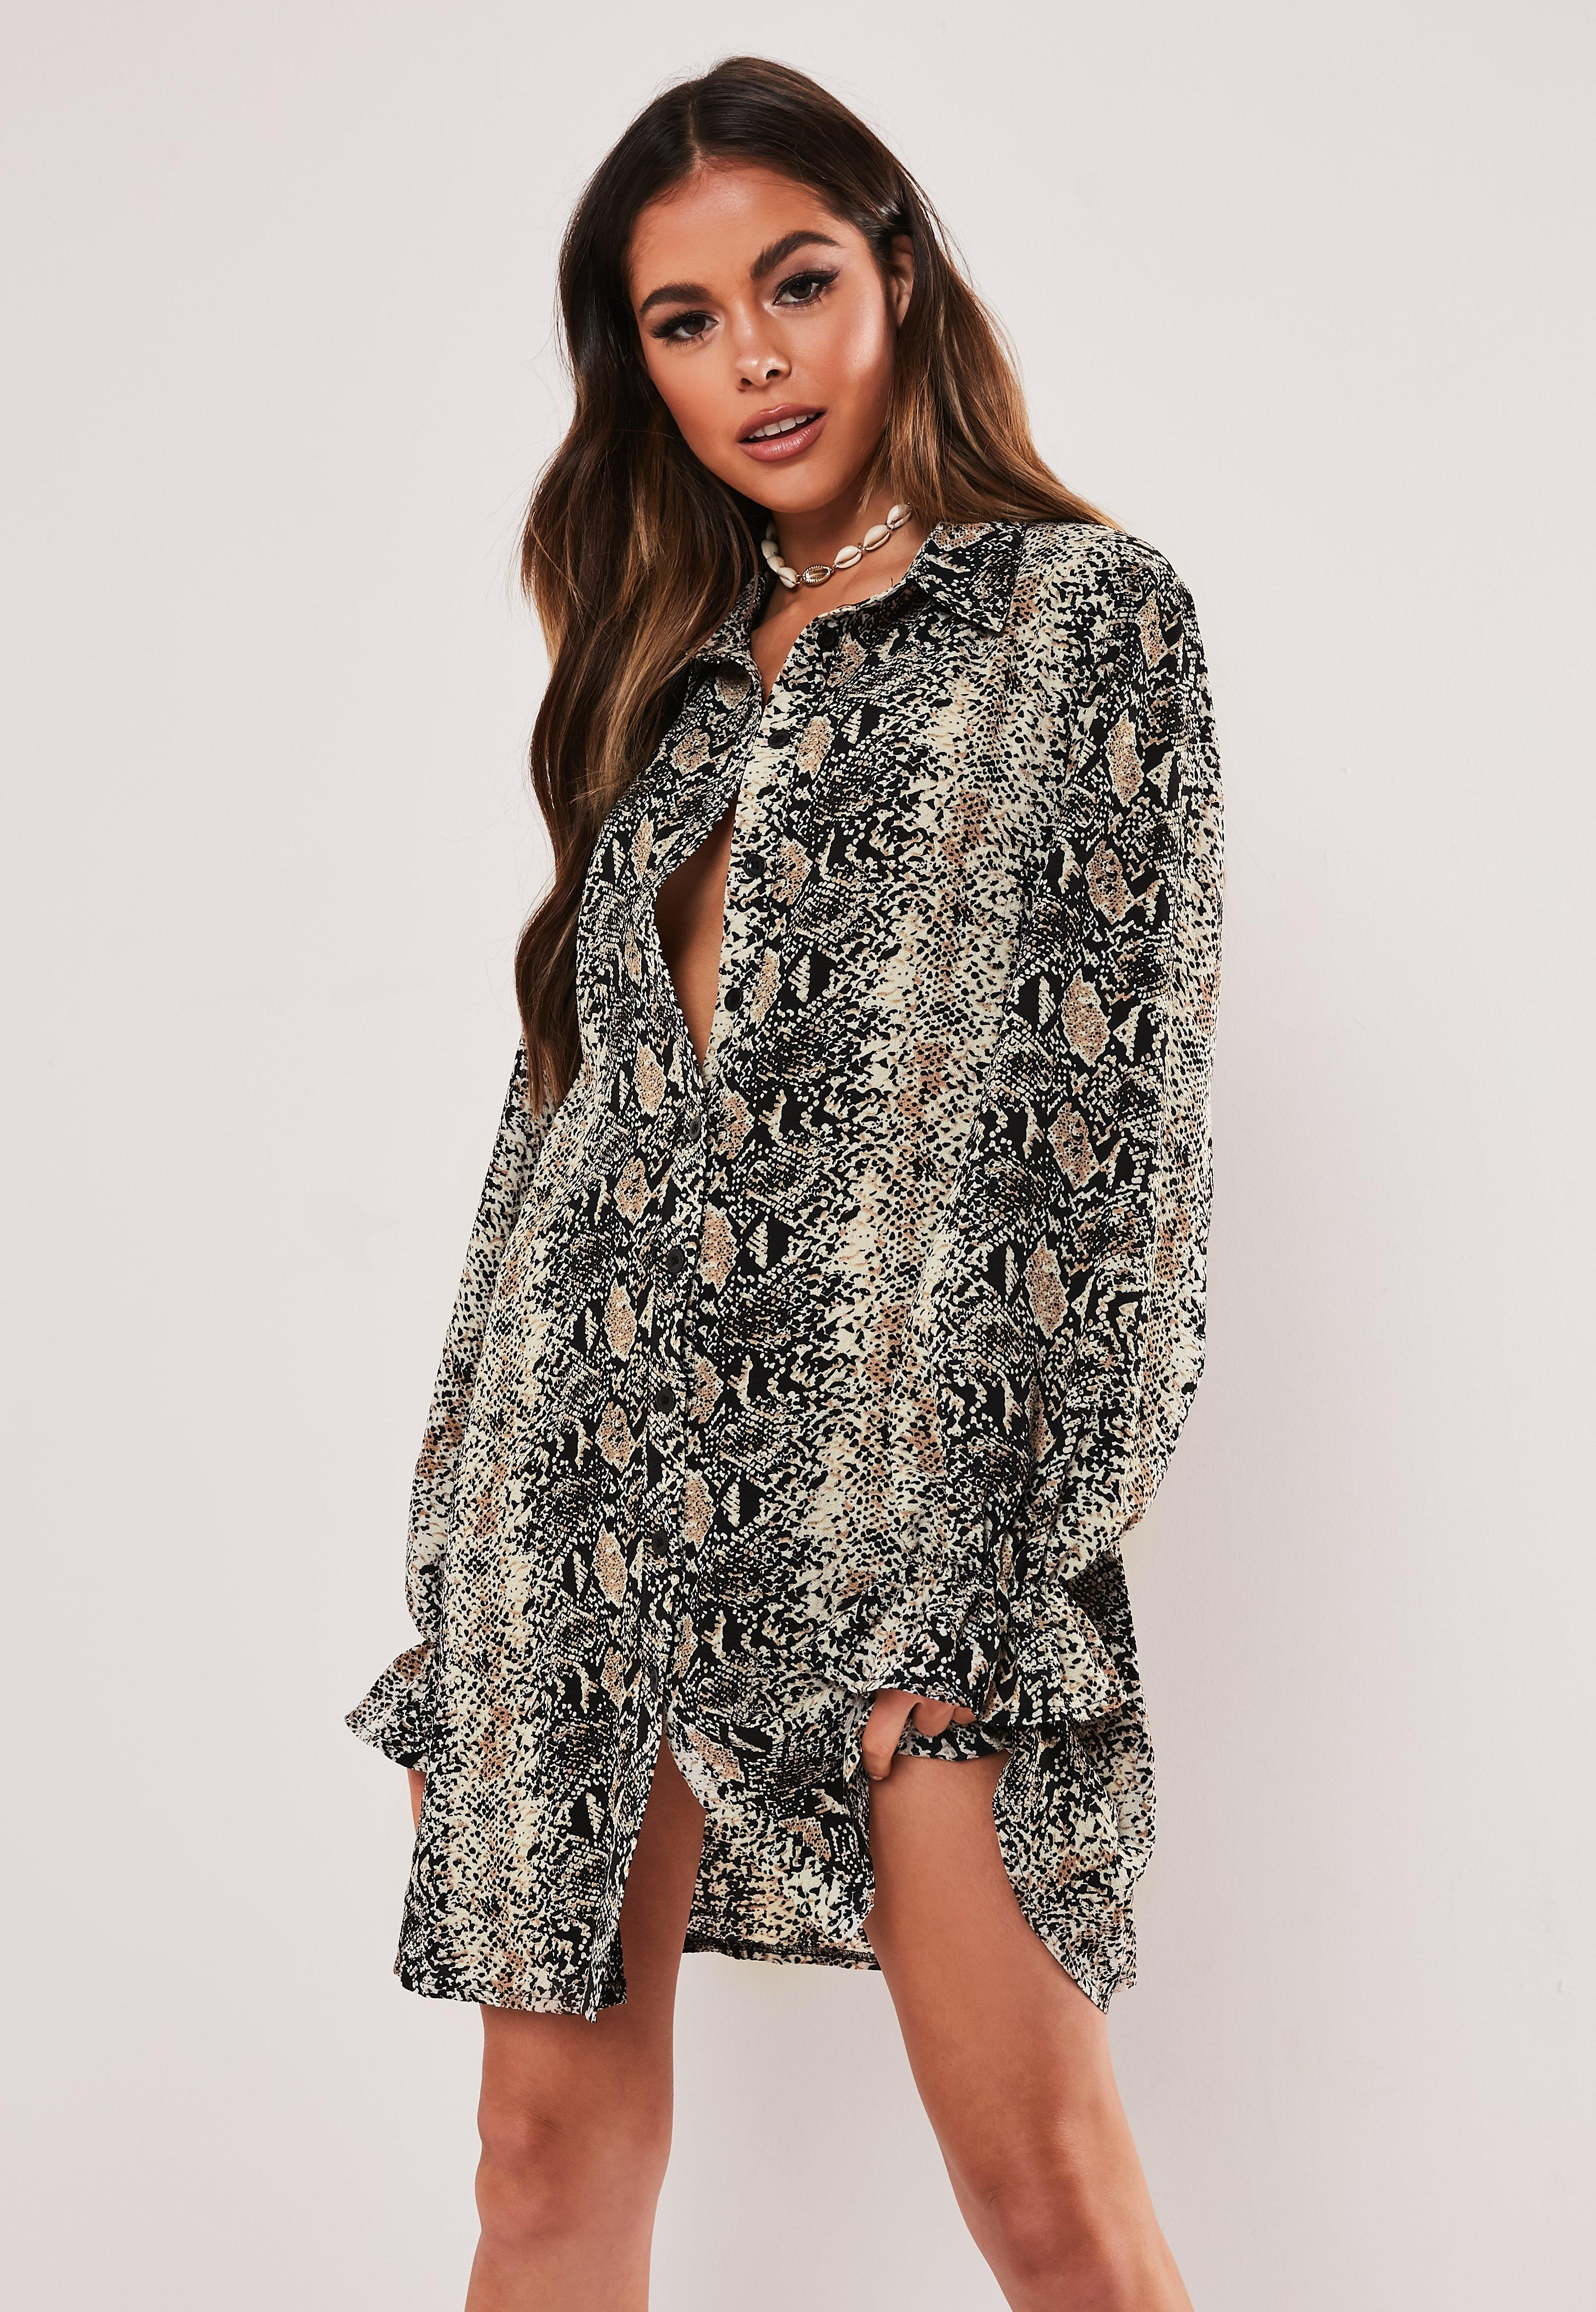 338faec34c9 Animal Print Clothing | Snake & Leopard Print Dresses - Missguided